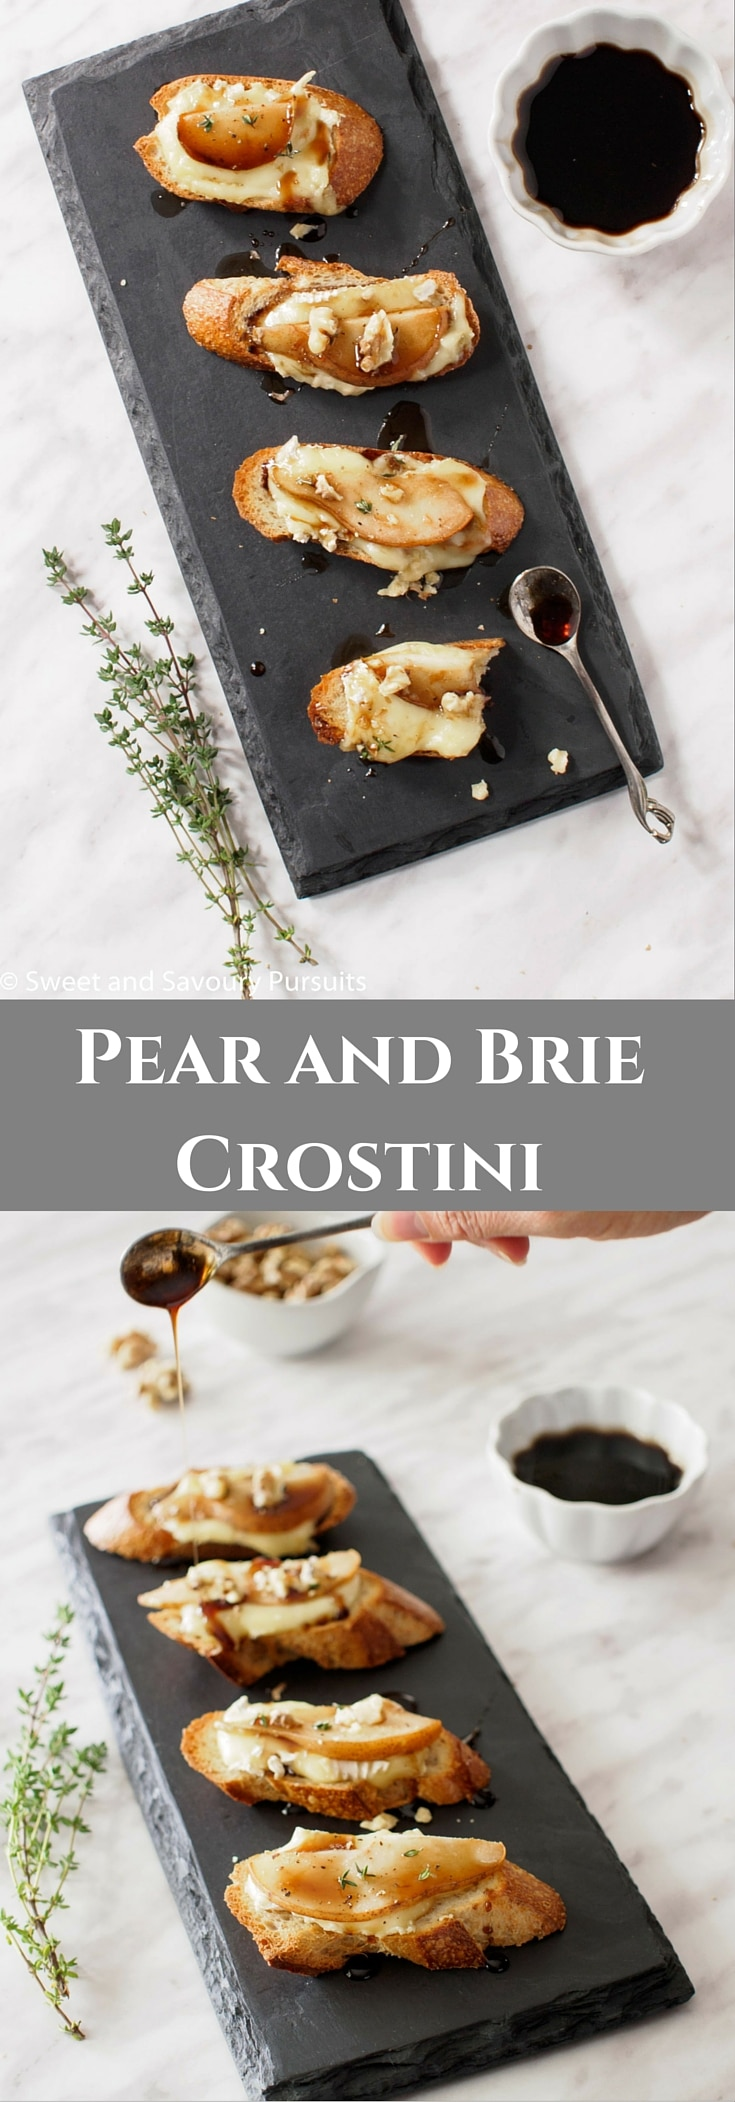 Built on the classic combination of fruit, cheese and nuts, this Pear and Brie Crostini is a delicious, elegant and simple to make appetizer